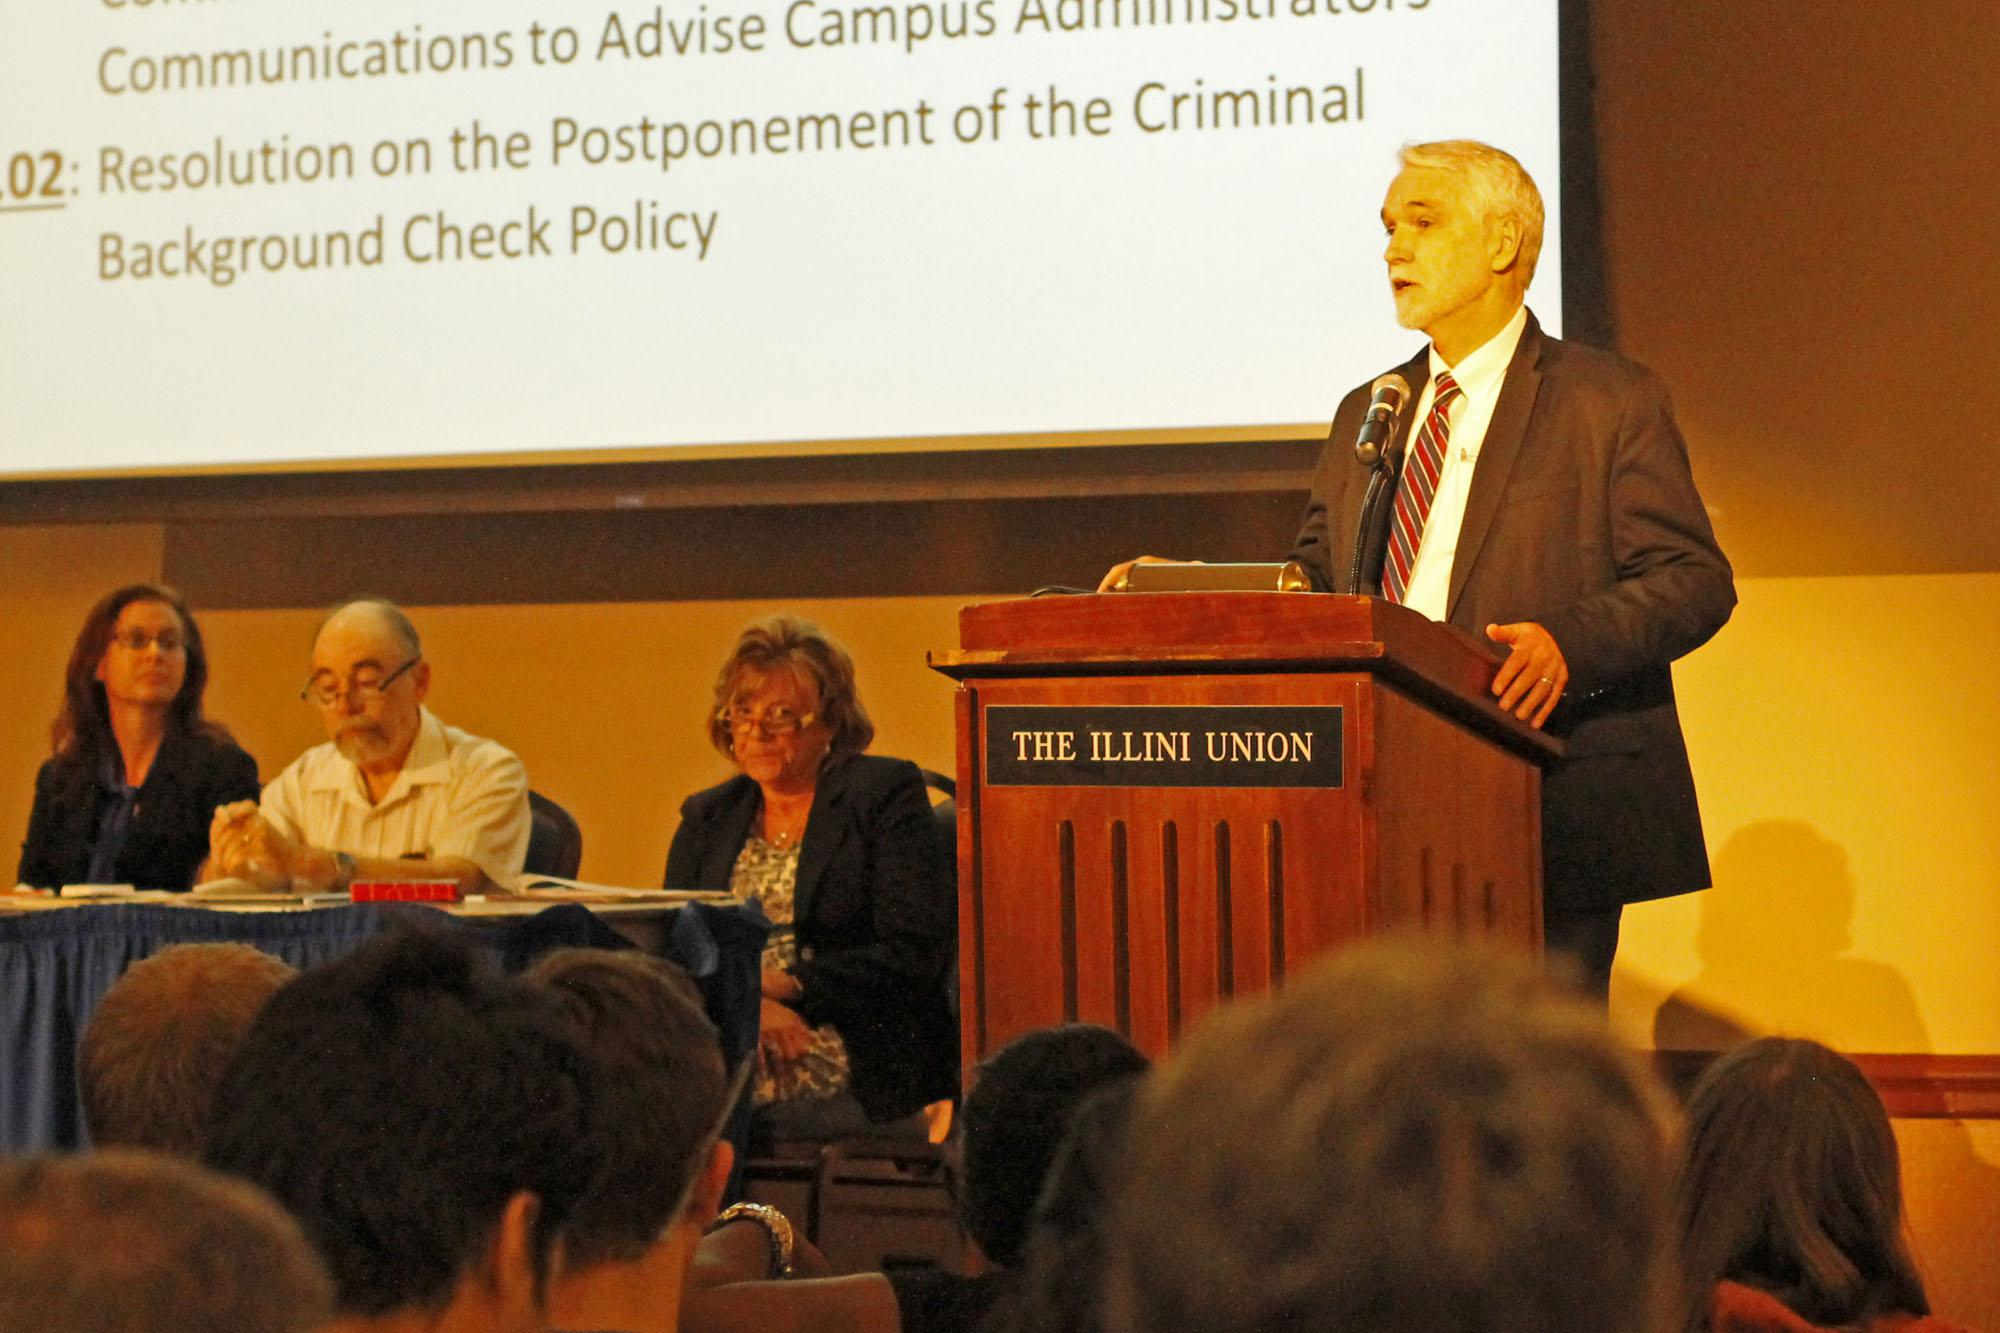 President Timothy L. Killeen addressing the UIUC Senate during their first meeting on September 21st, 2105.